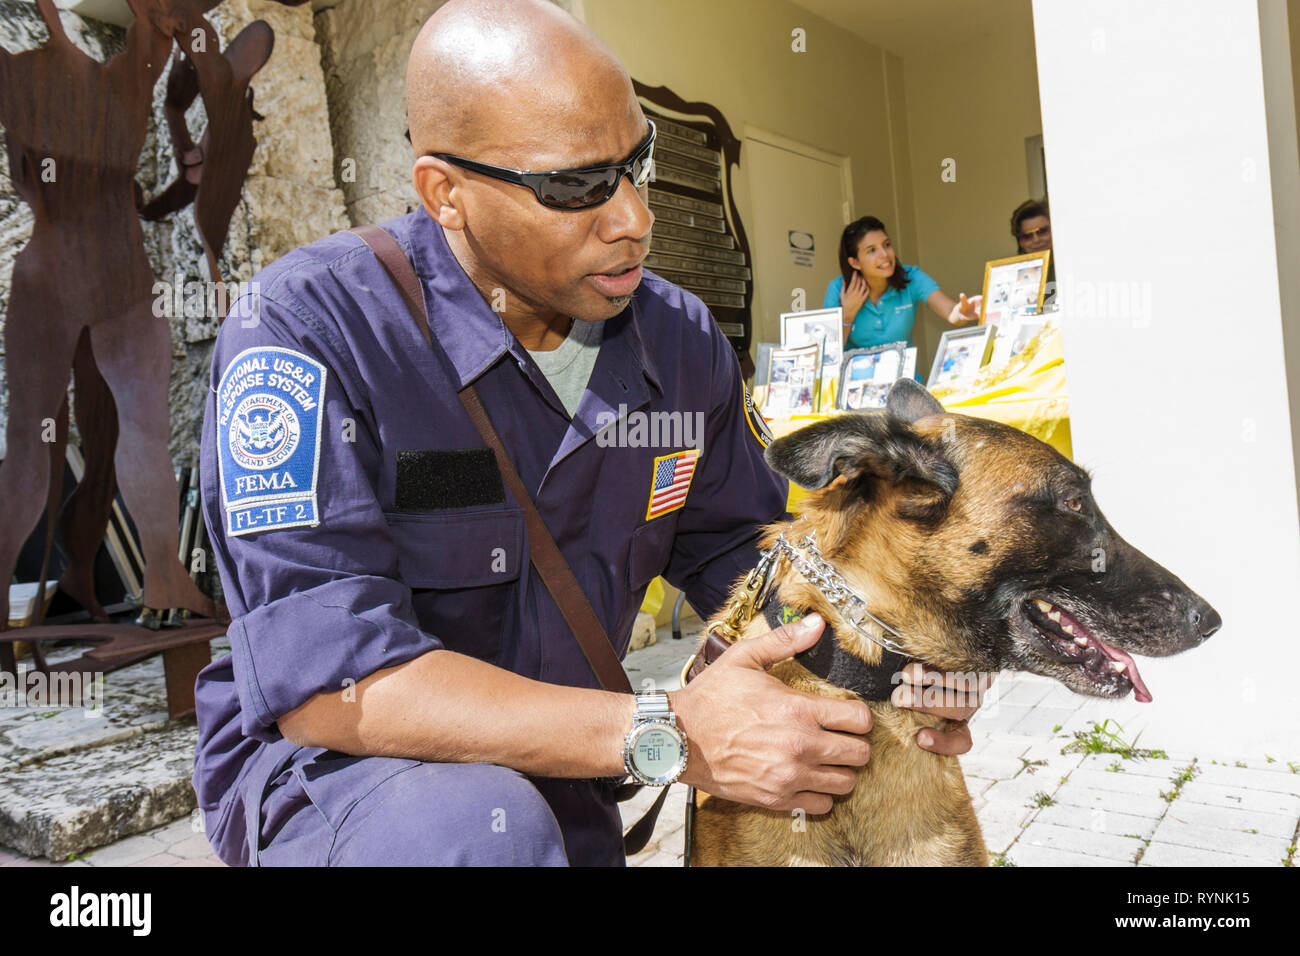 Miami Florida Temple Israel Bow-Wow Palooza Interfaith Blessing of the Animals owner dog canine FEMA Urban Search and Rescue Bla - Stock Image